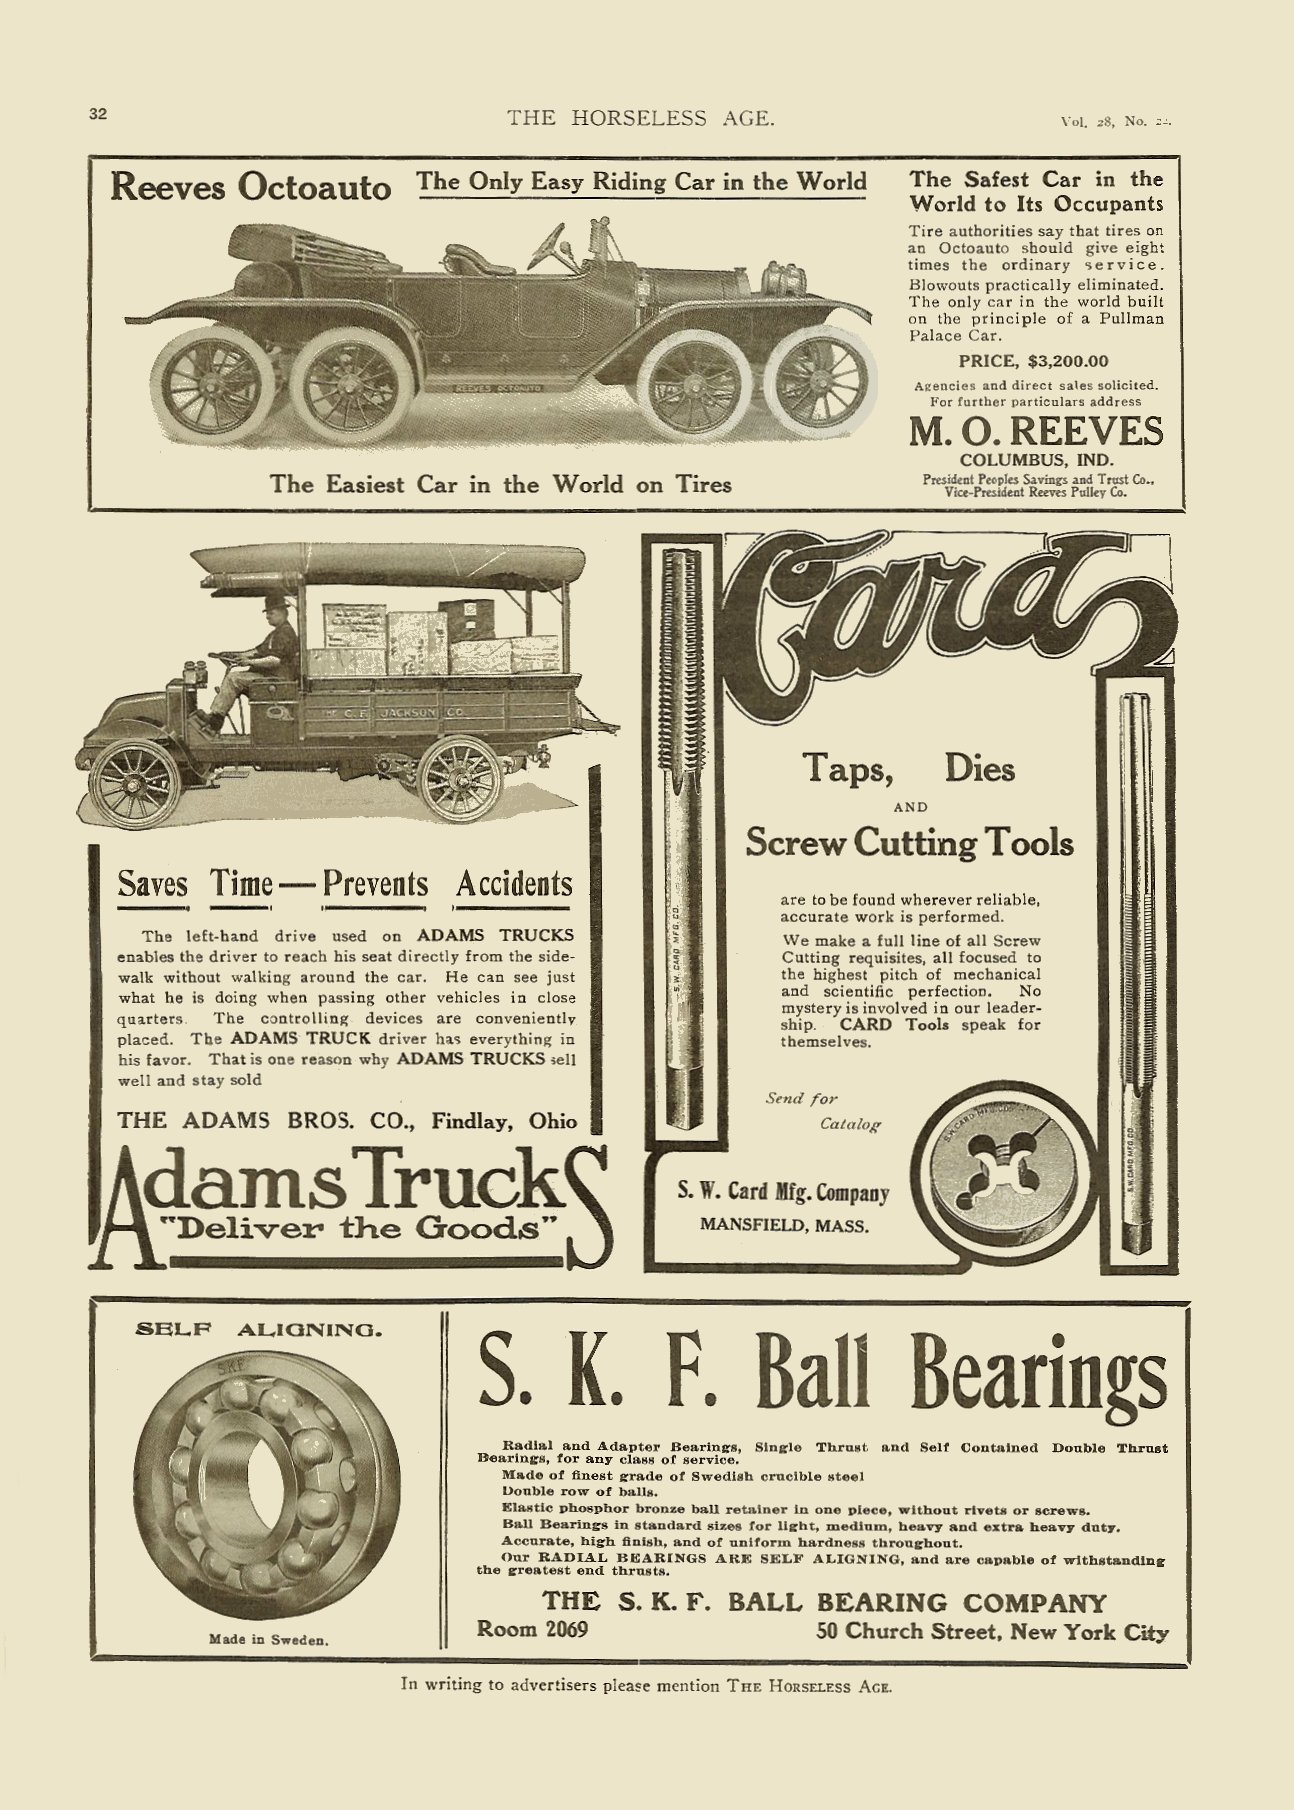 1911 11 29 REEVES Octoauto $3,200 M. O. Reeves Columbus, Ohio THE HORSELESS AGE Vol. 28, No. 22 November 29, 1911 9″x12″ page 32